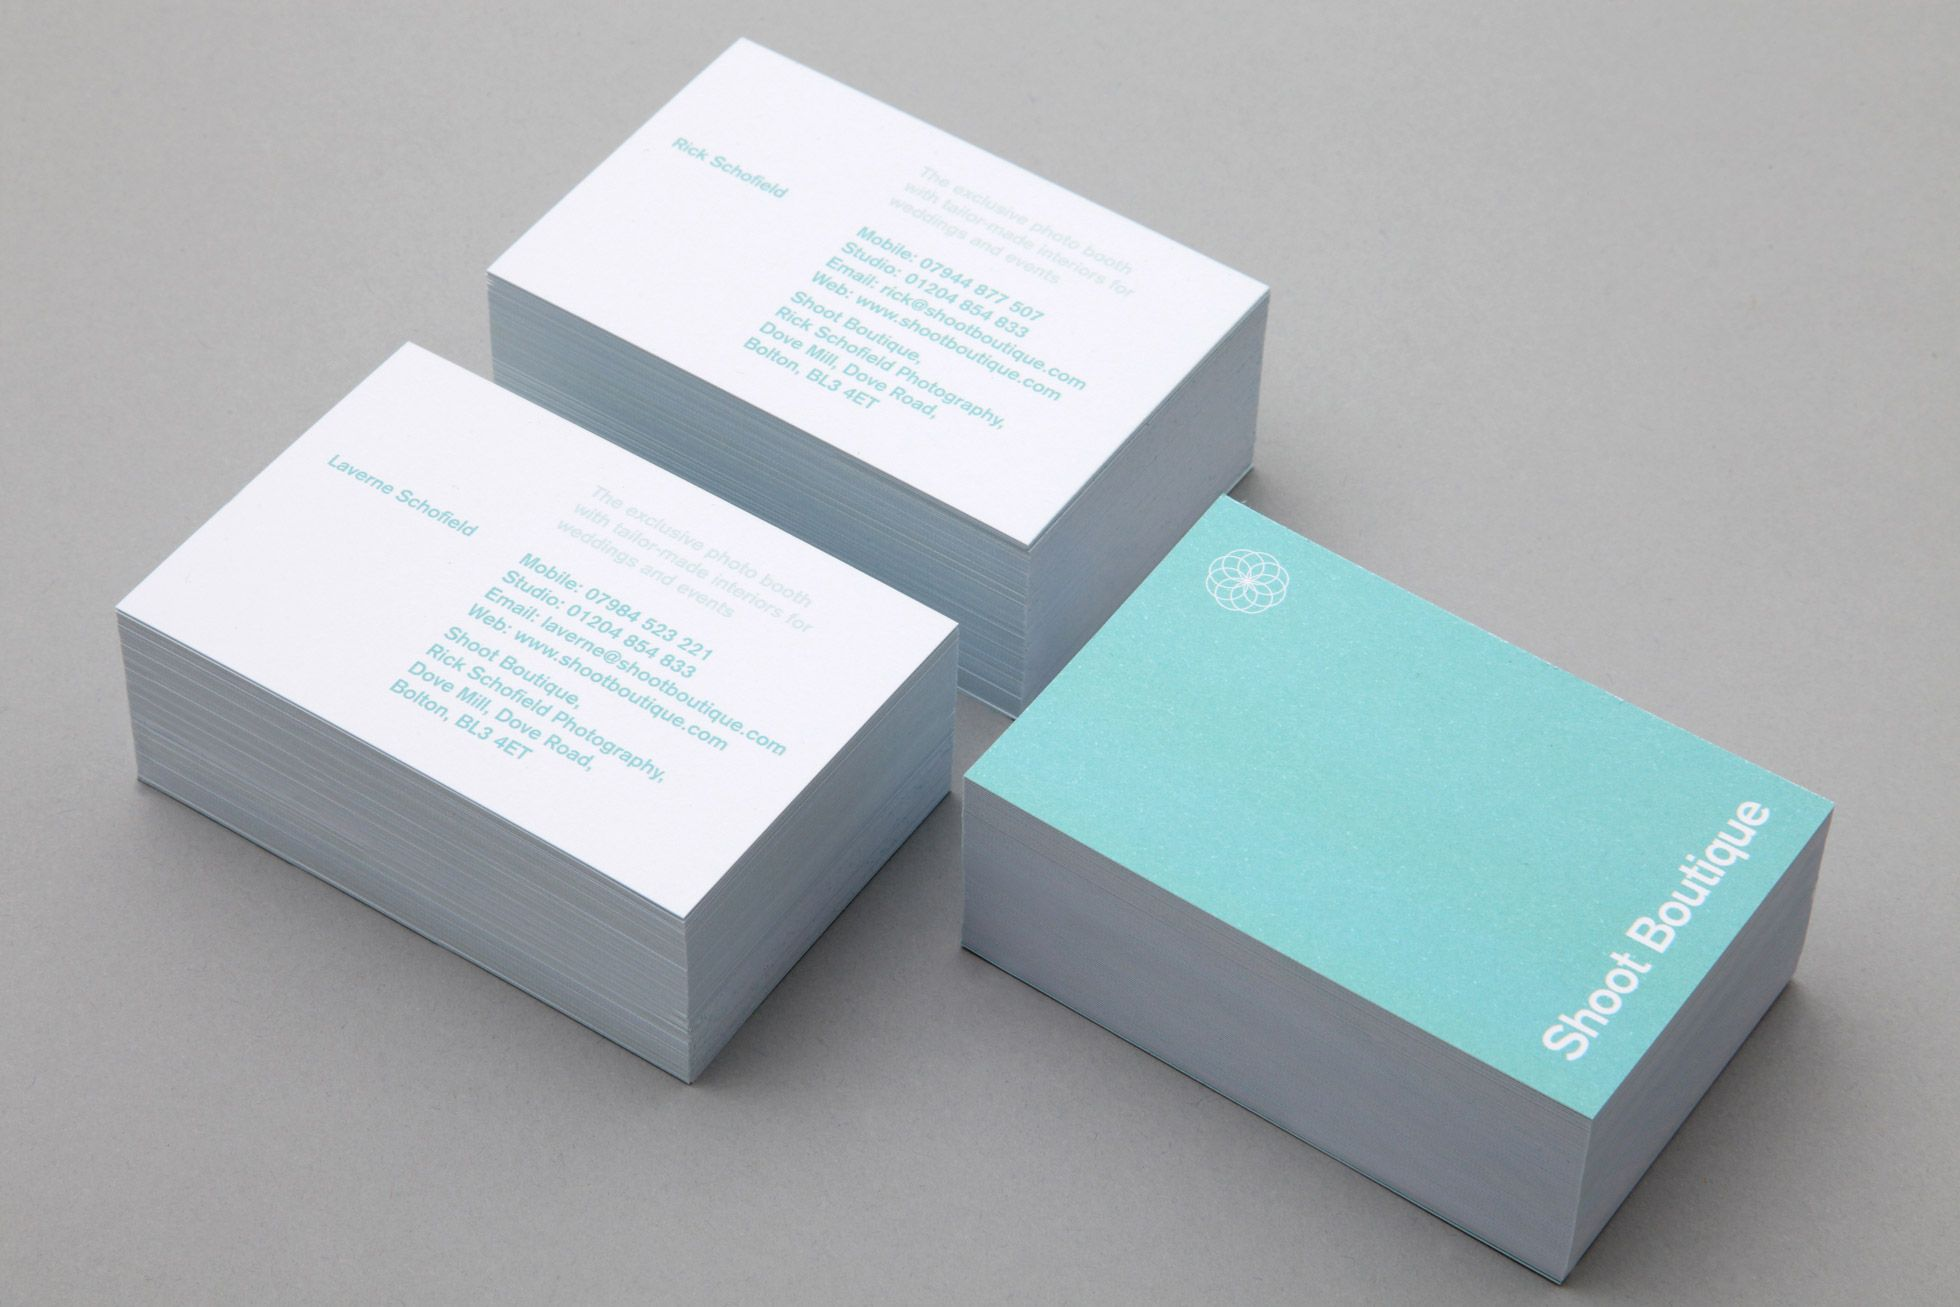 shoot boutique business cards by very own studio